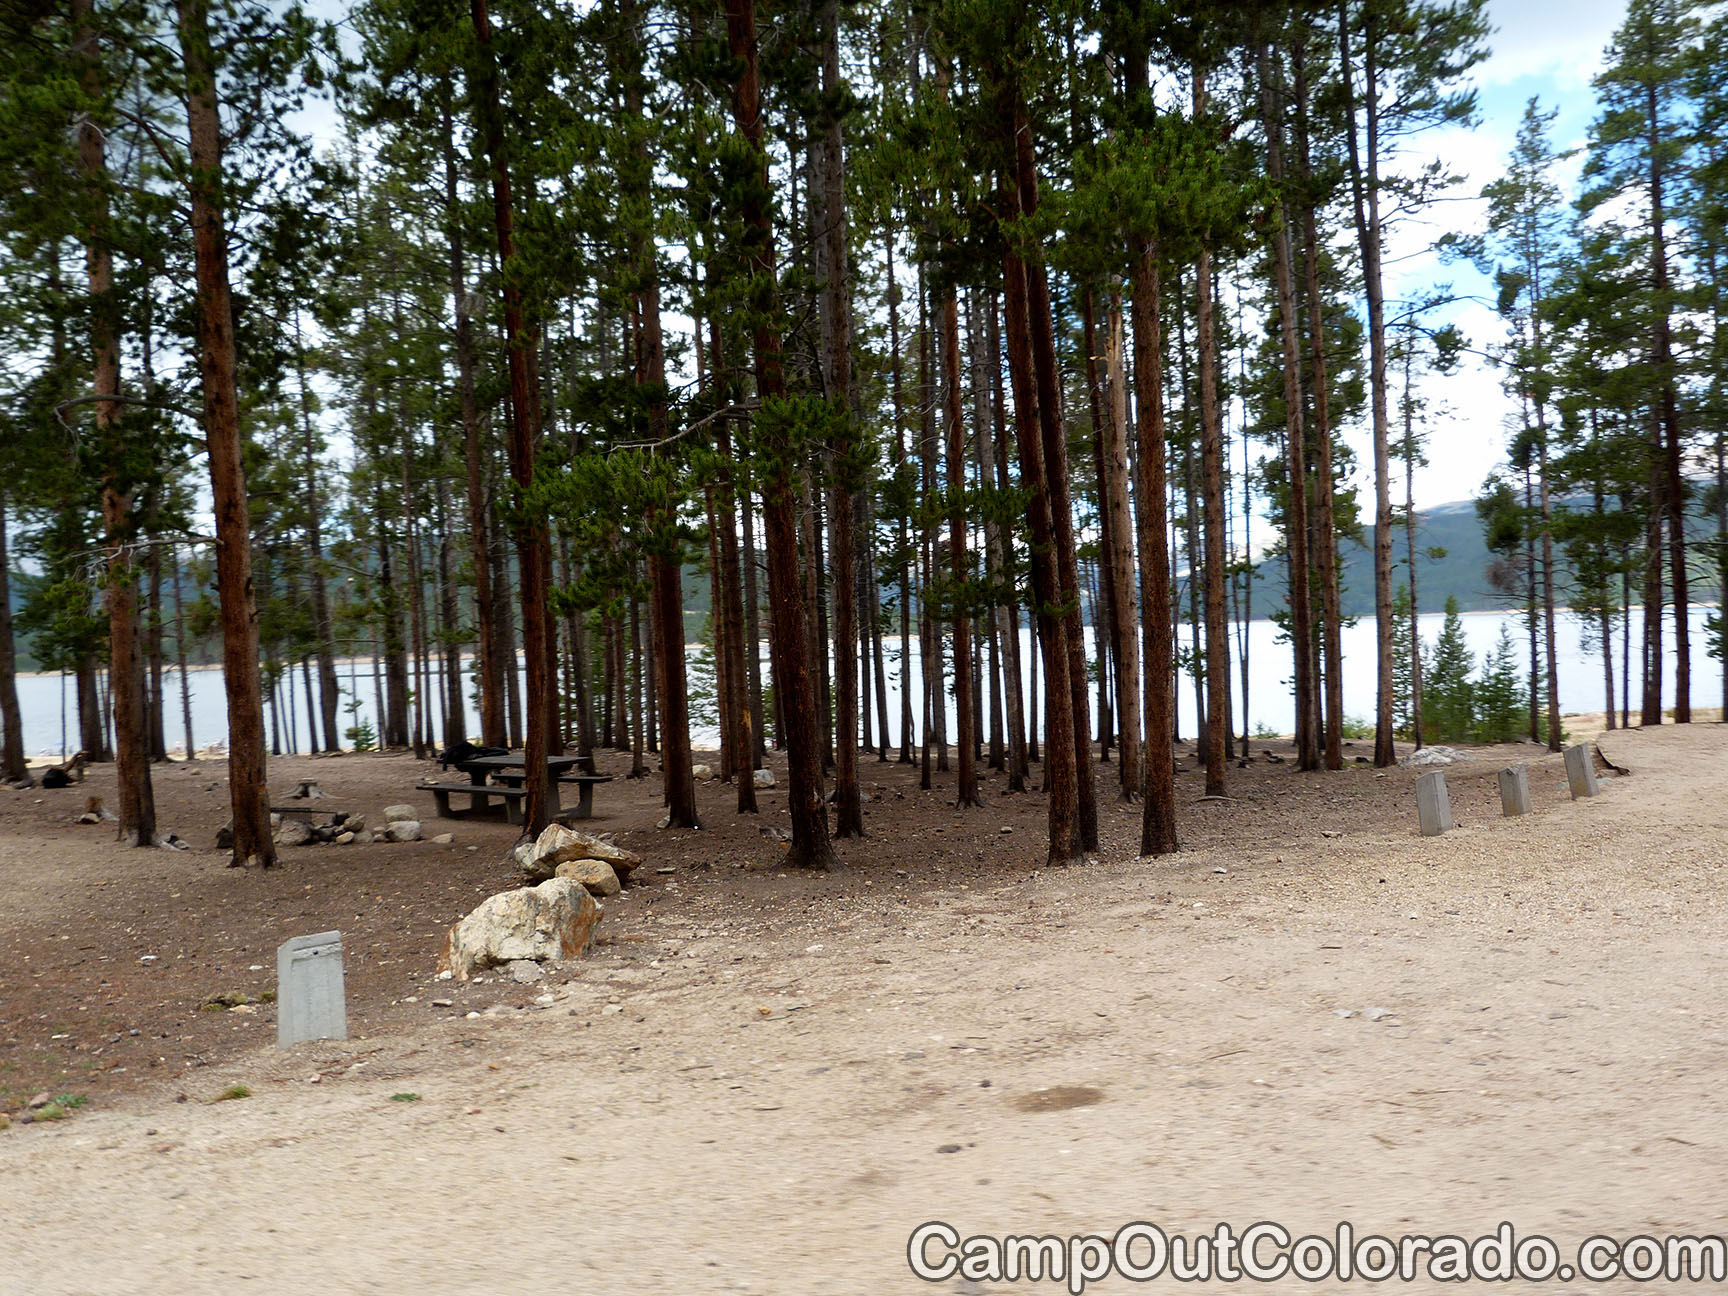 Camp-out-colorado-molly-brown-turquoise-lake-near-water